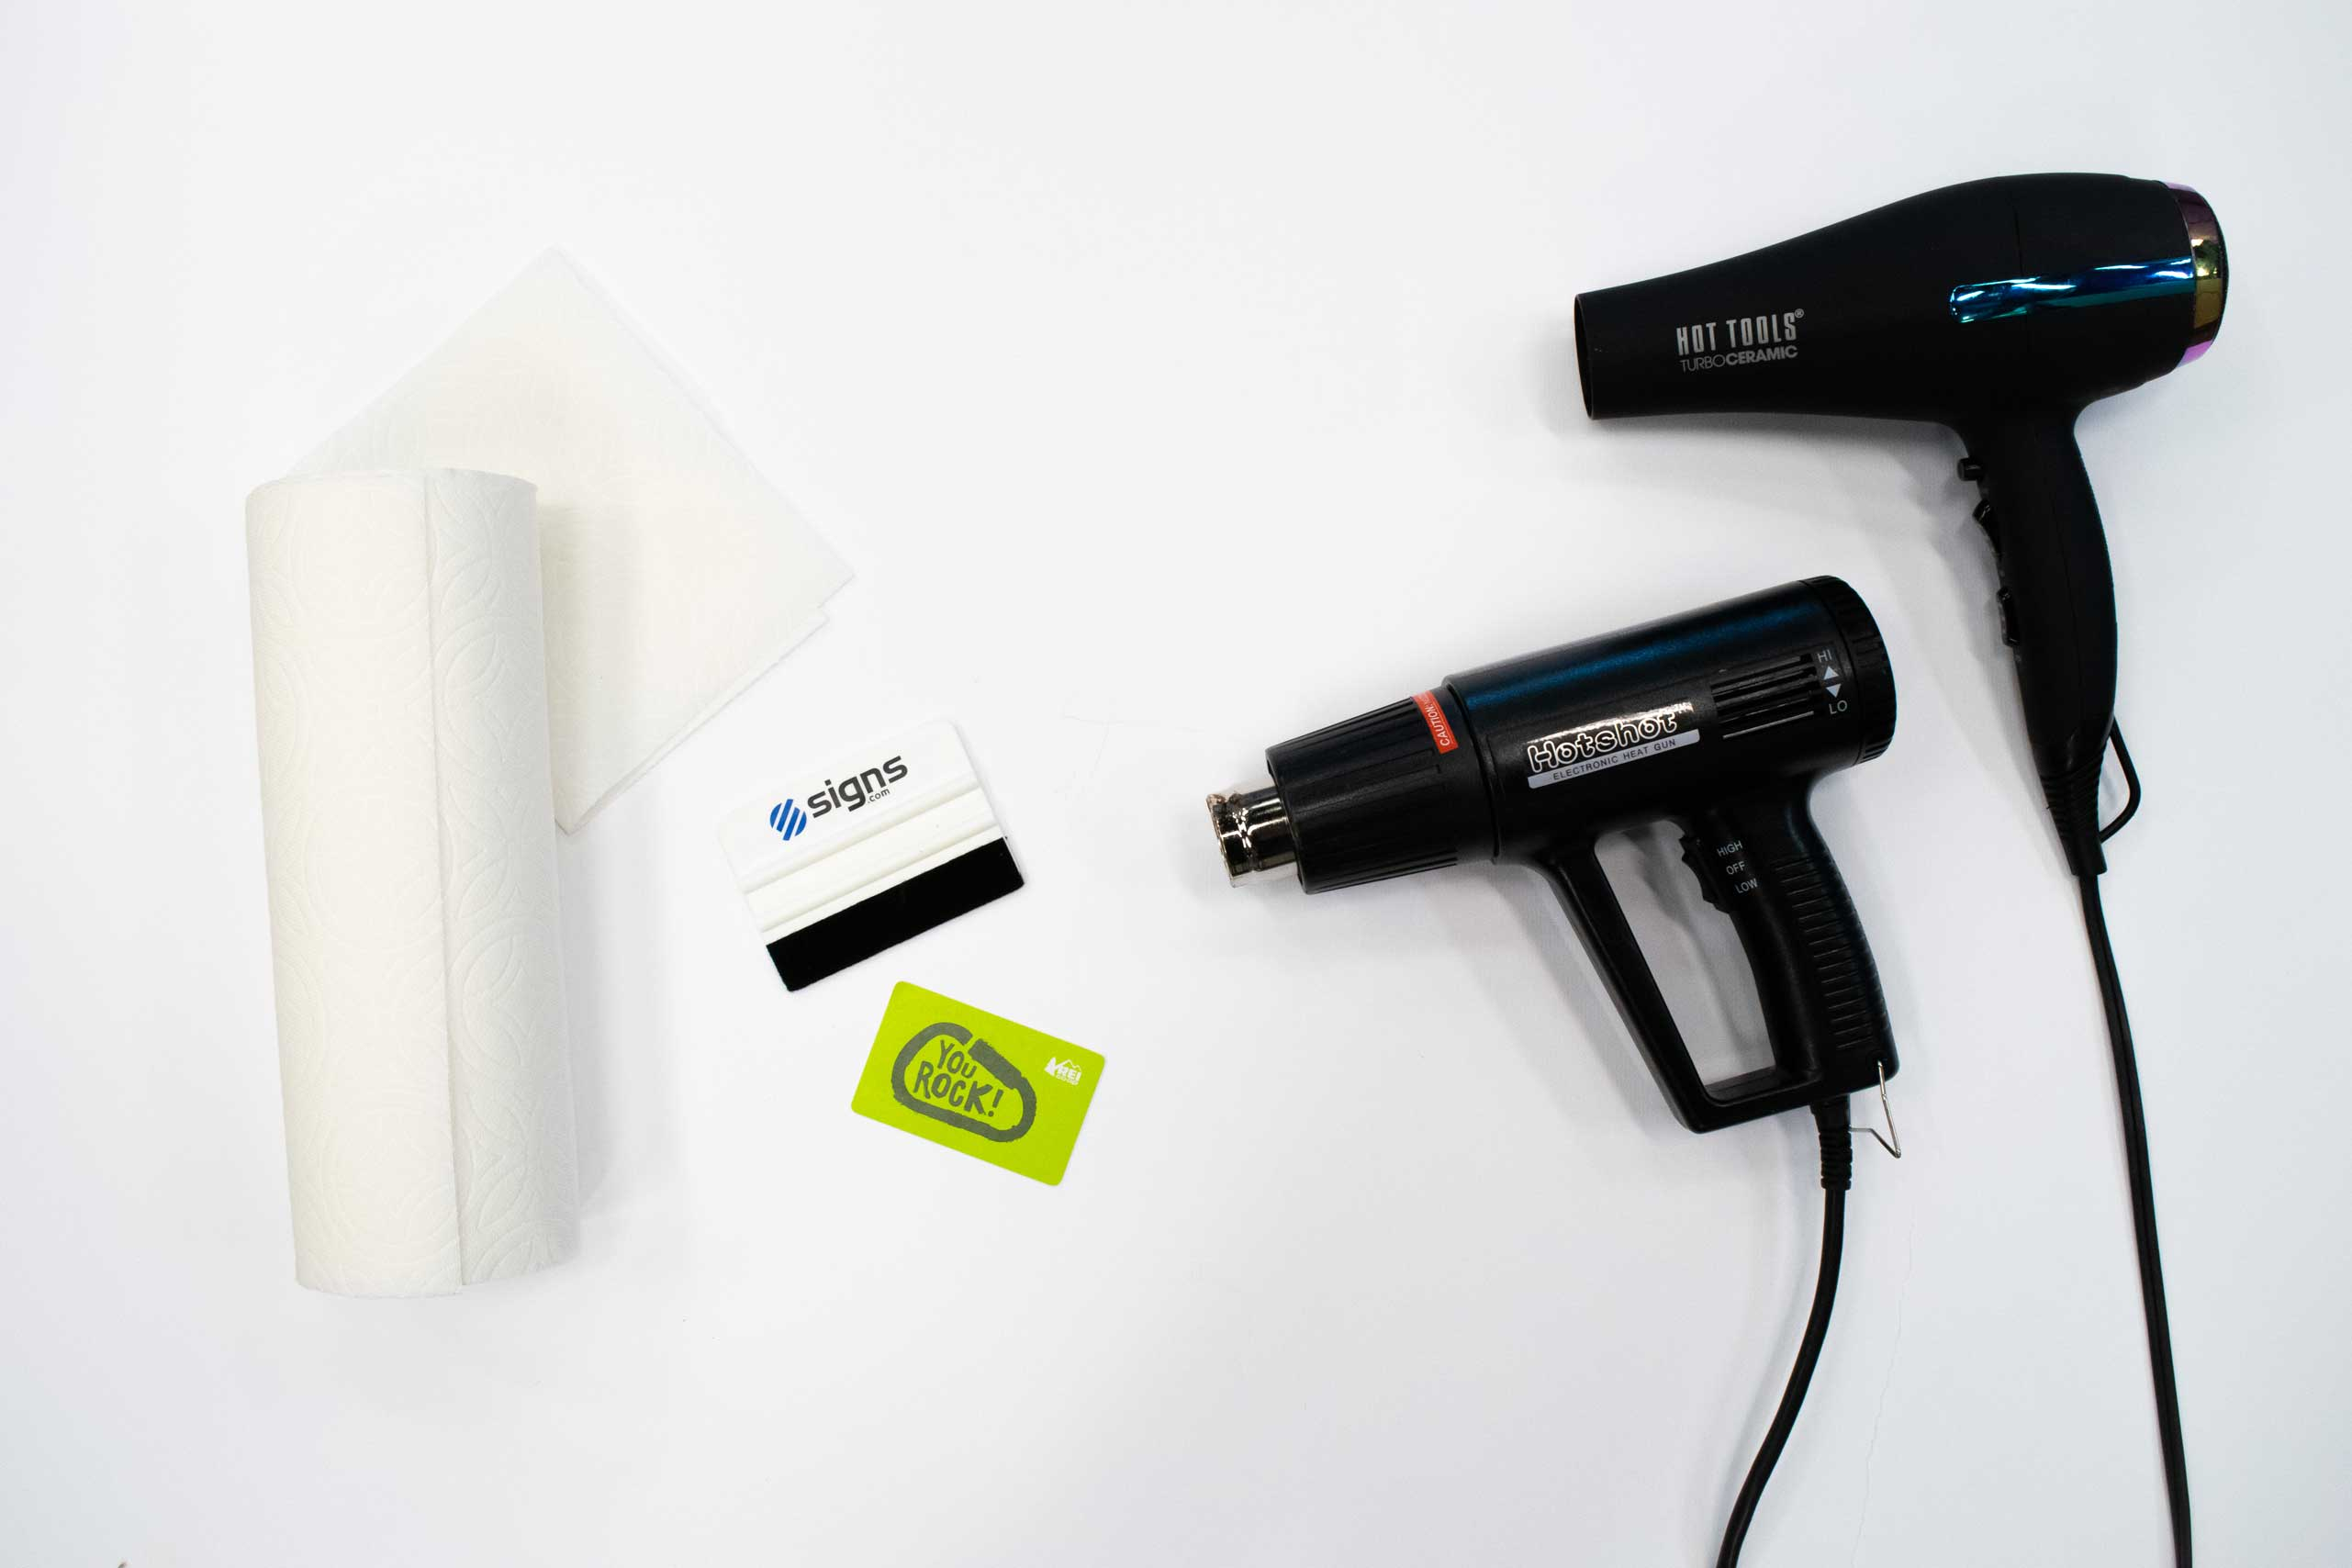 Supplies for removing vinyl lettering, including paper towels, plastic chisel/credit card, and heat gun/blow dryer